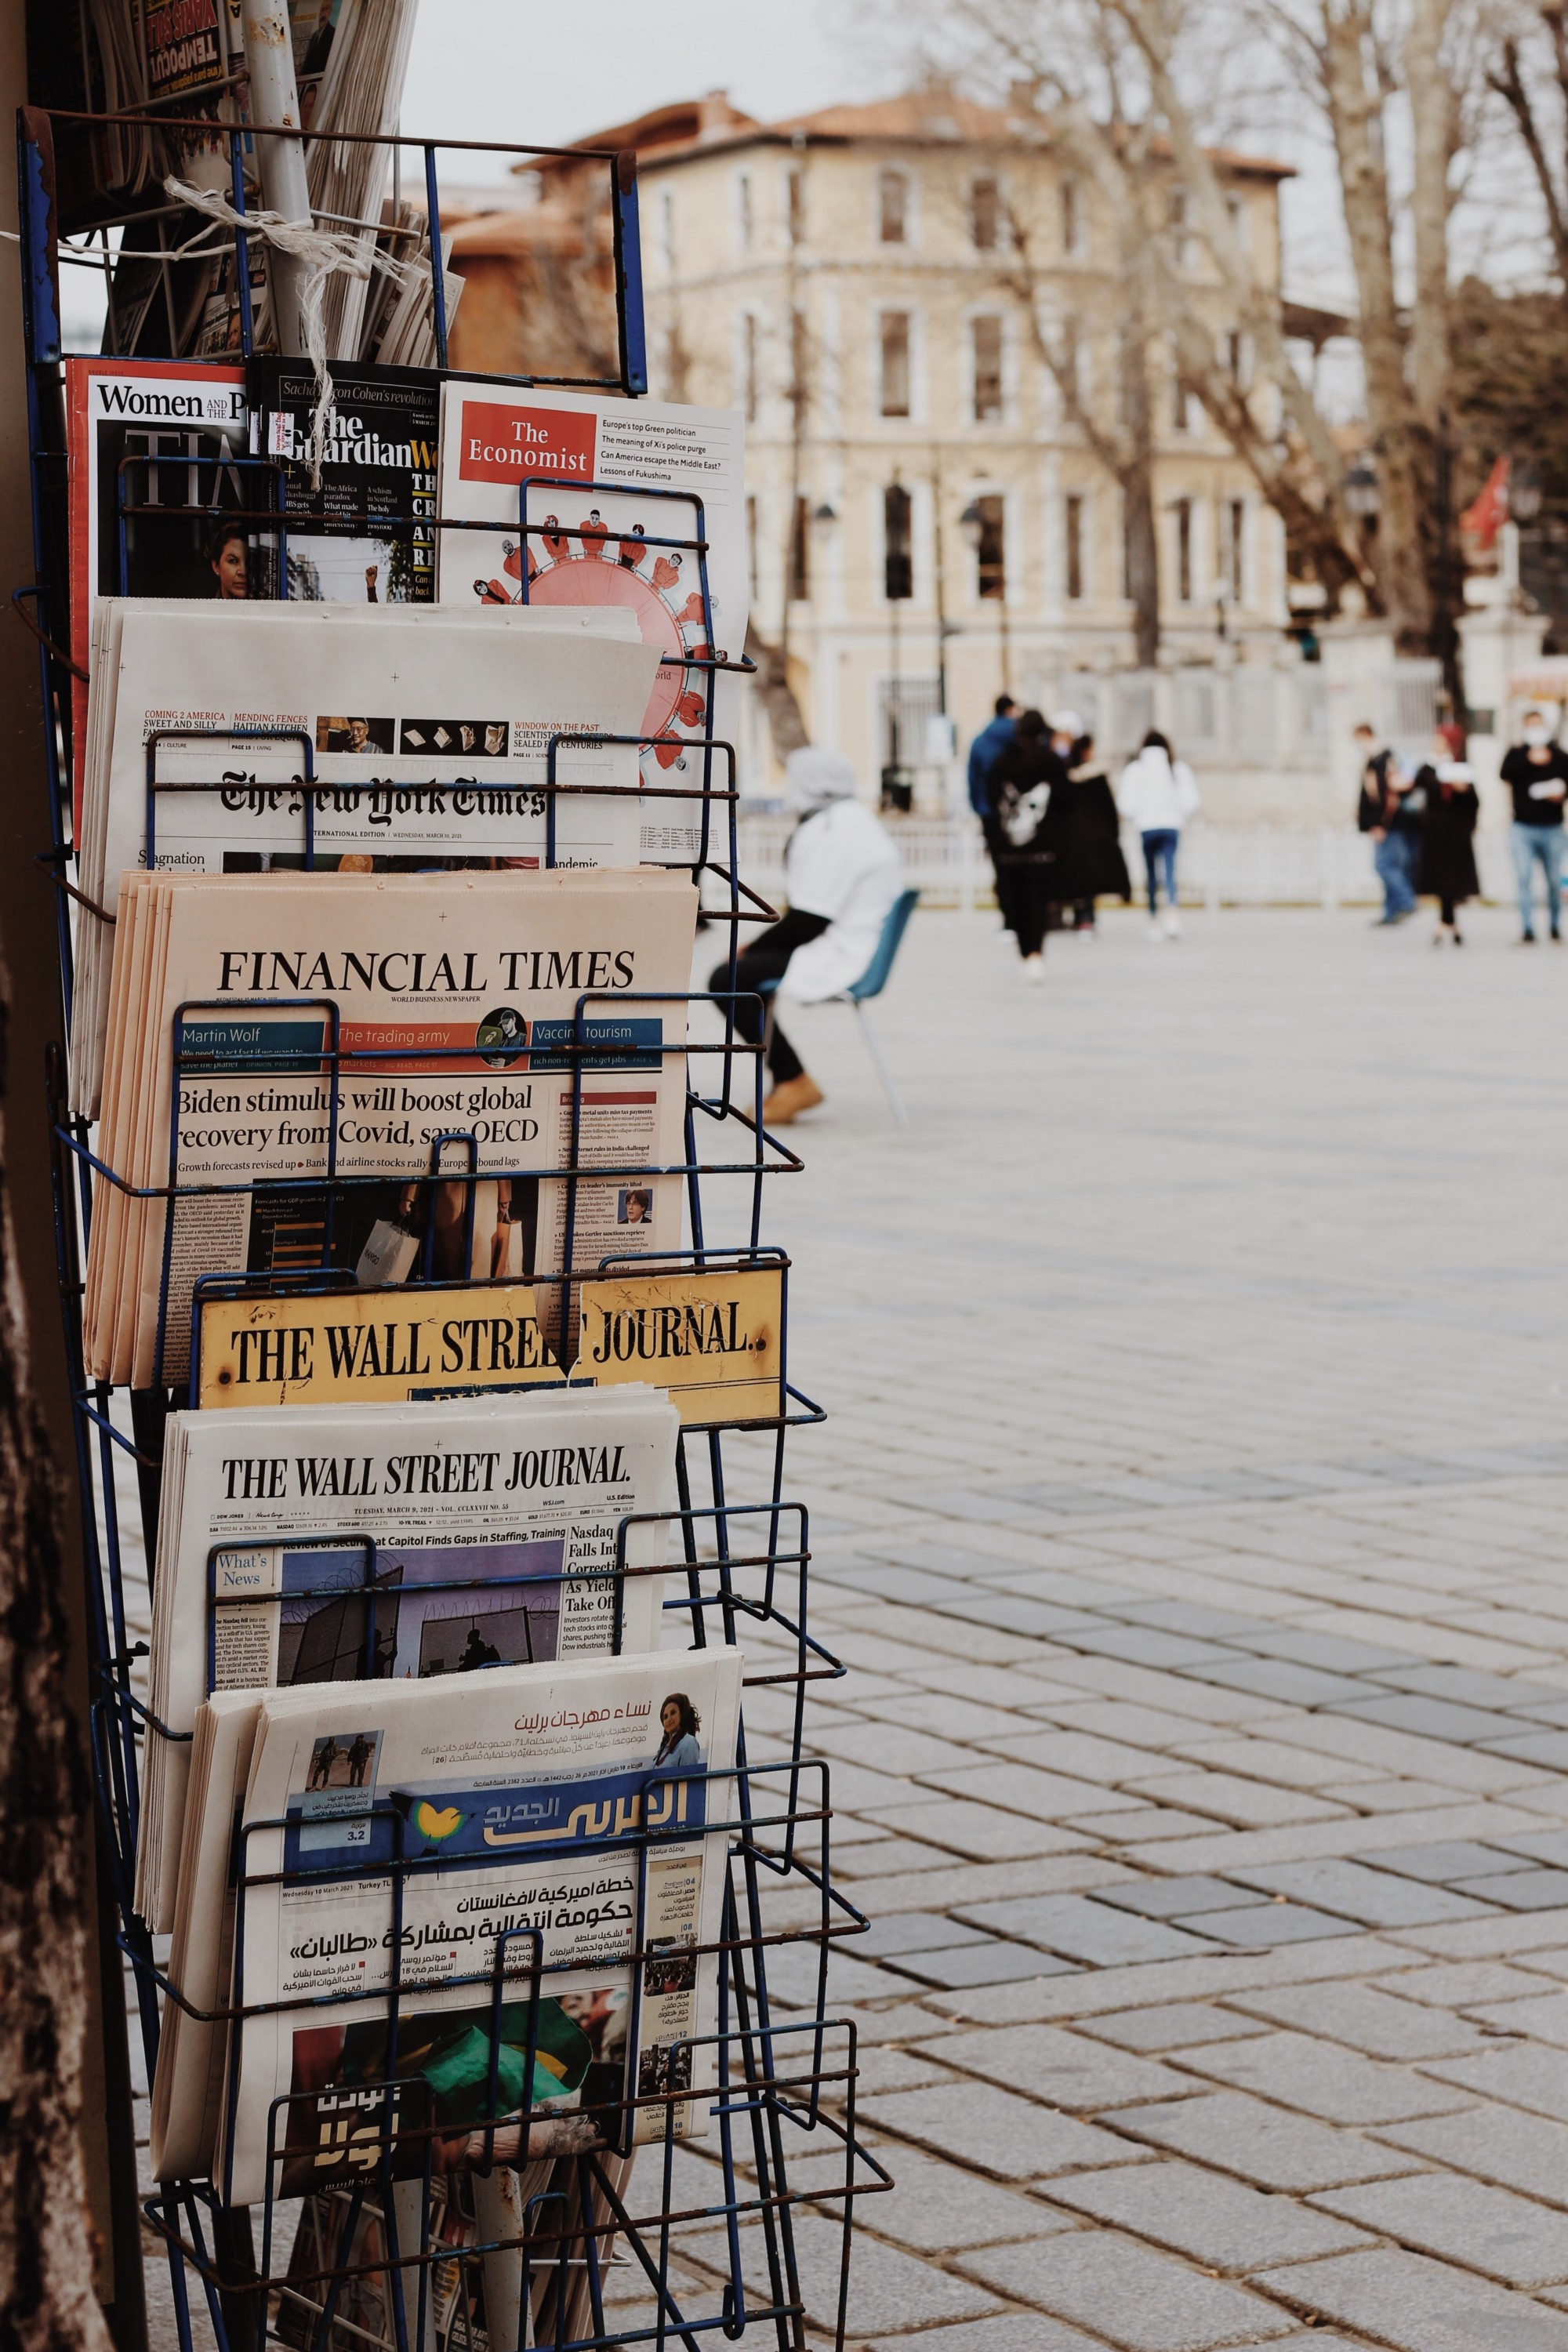 Newspaper vendor stand in a open square with newspapers in the rack.